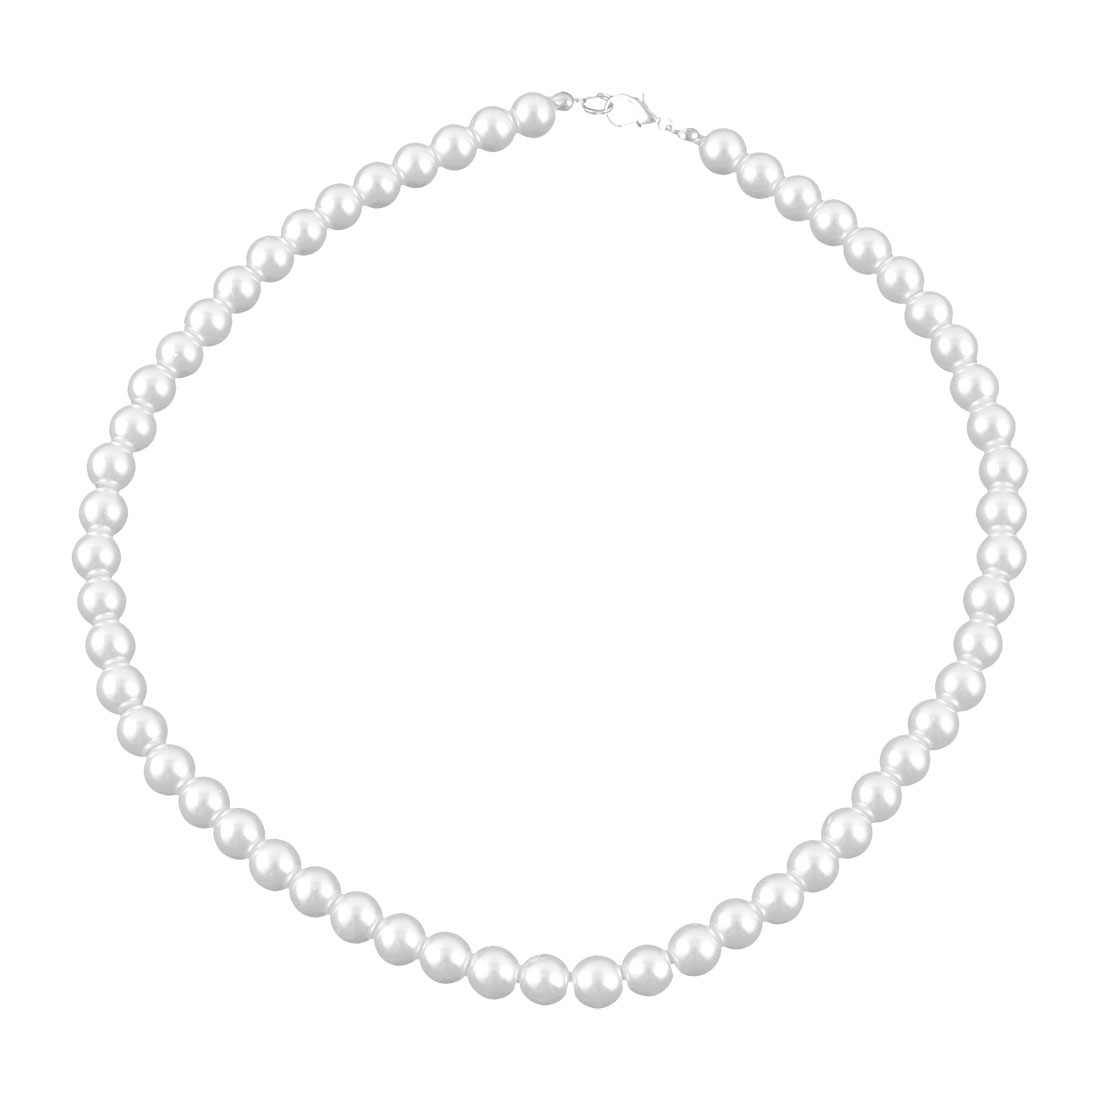 Charming Pearl Necklace w. Metal Clasp Costume Jewelry